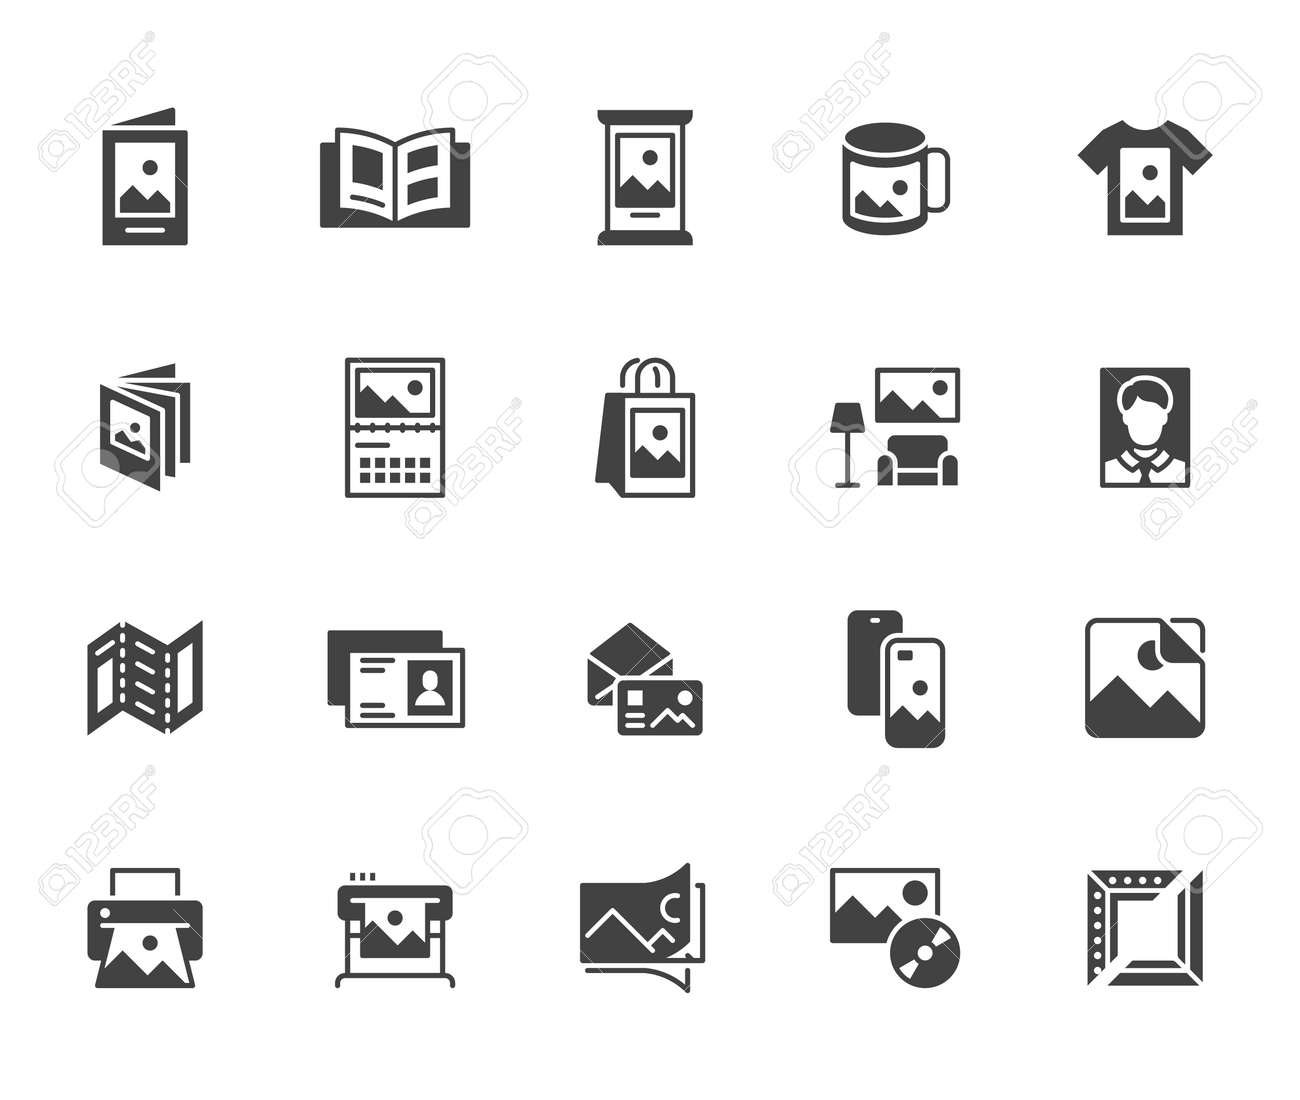 Photo printing flat icon set. Brand identity printed on products like brochure, banner, mug, plotter black silhouette vector illustrations. Simple glyph signs for polygraphy. - 161710105